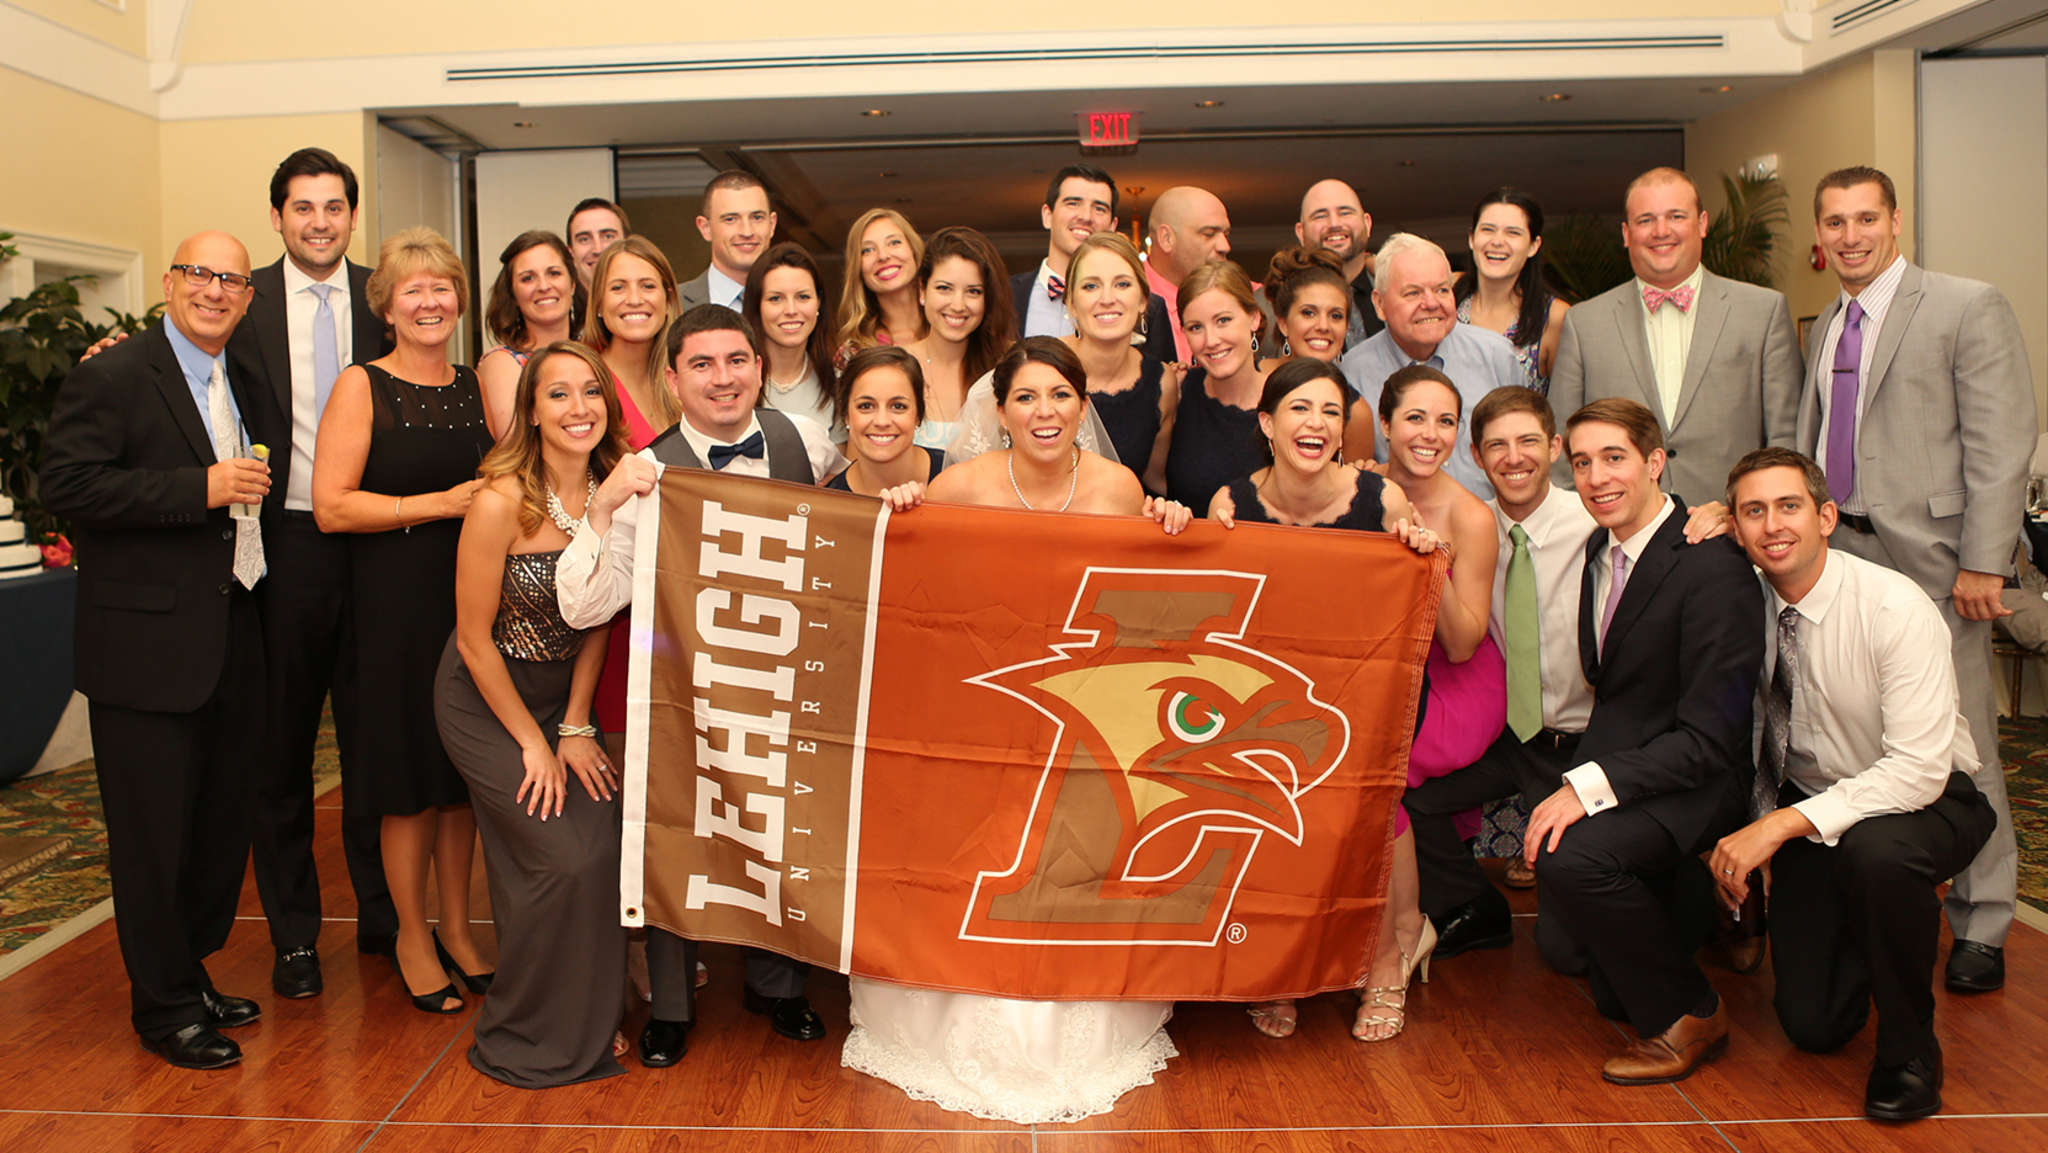 Other guests showing allegiance to Lehigh - Laura´s alma mater.